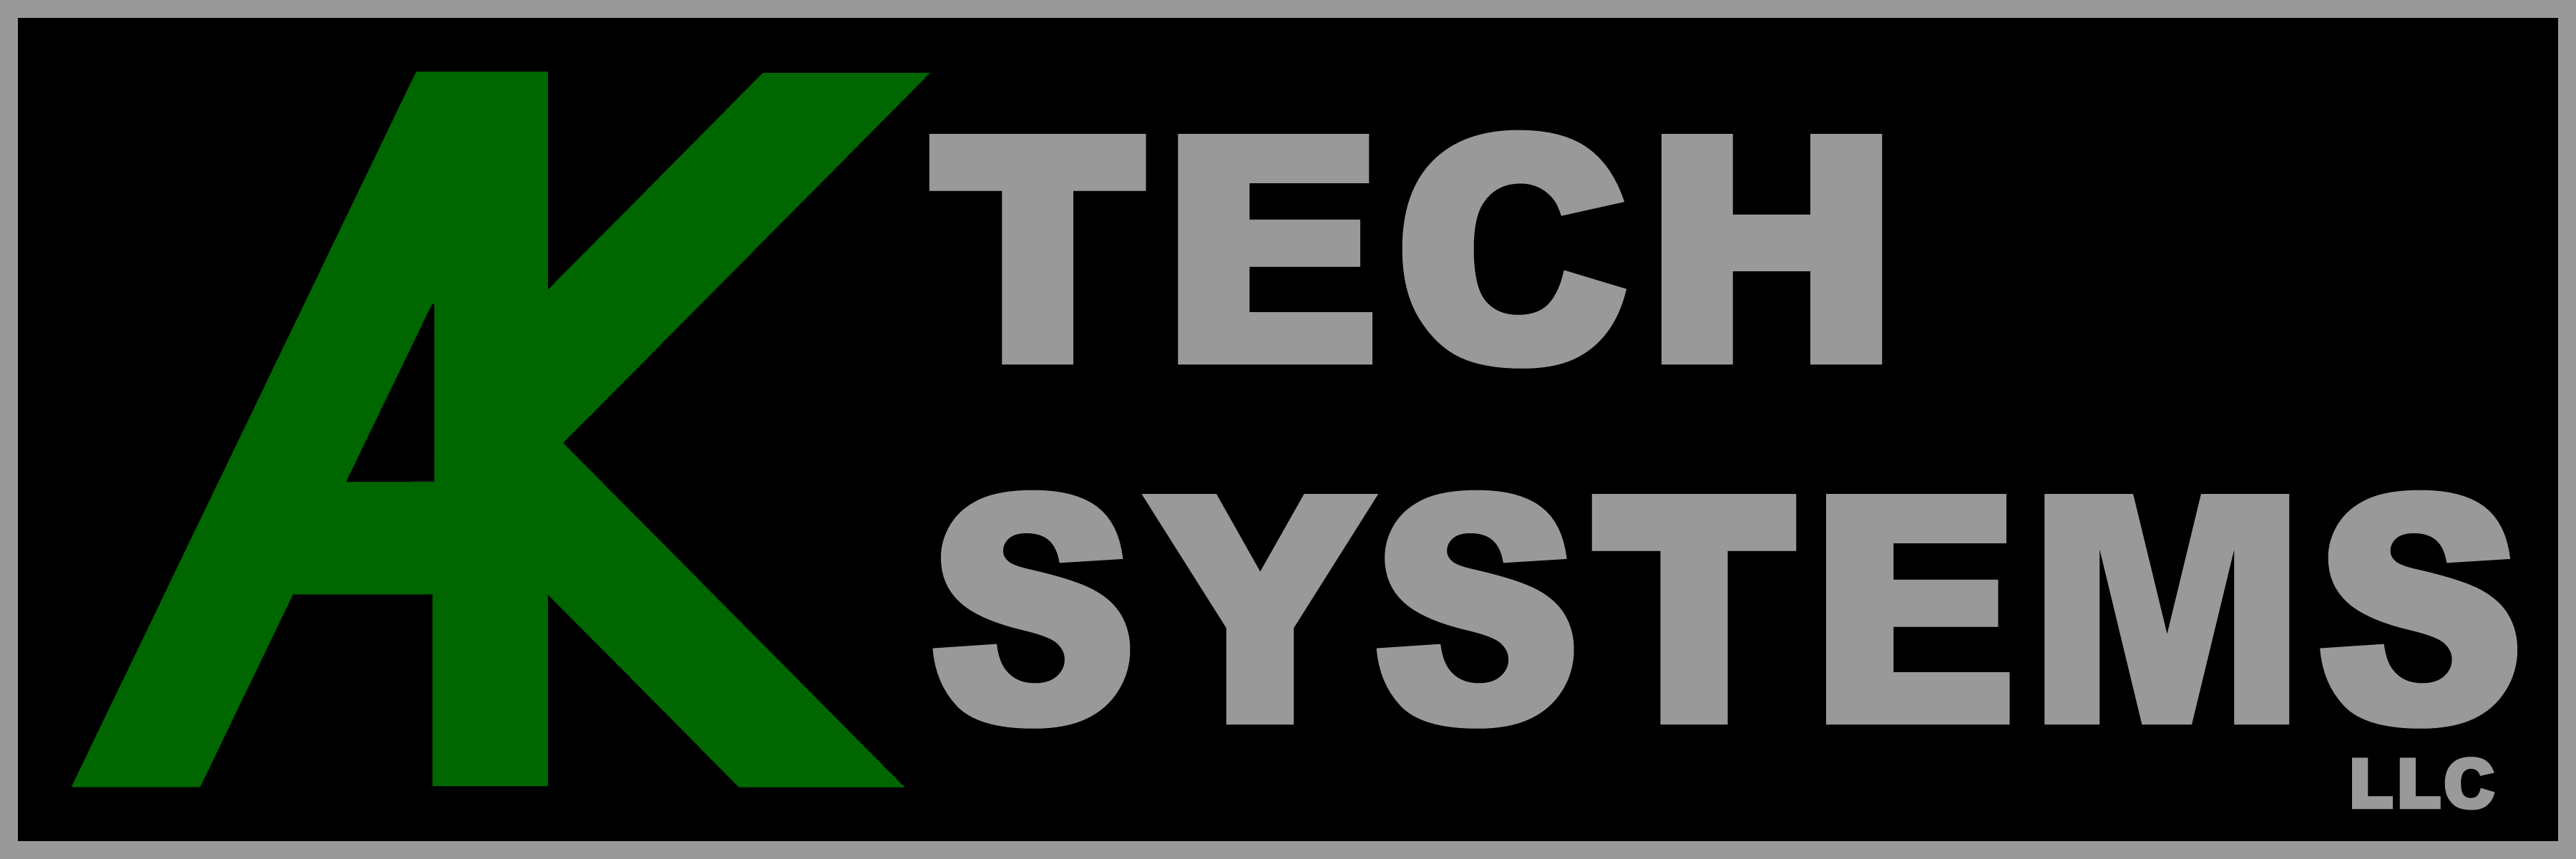 AK TECH SYSTEMS, LLC